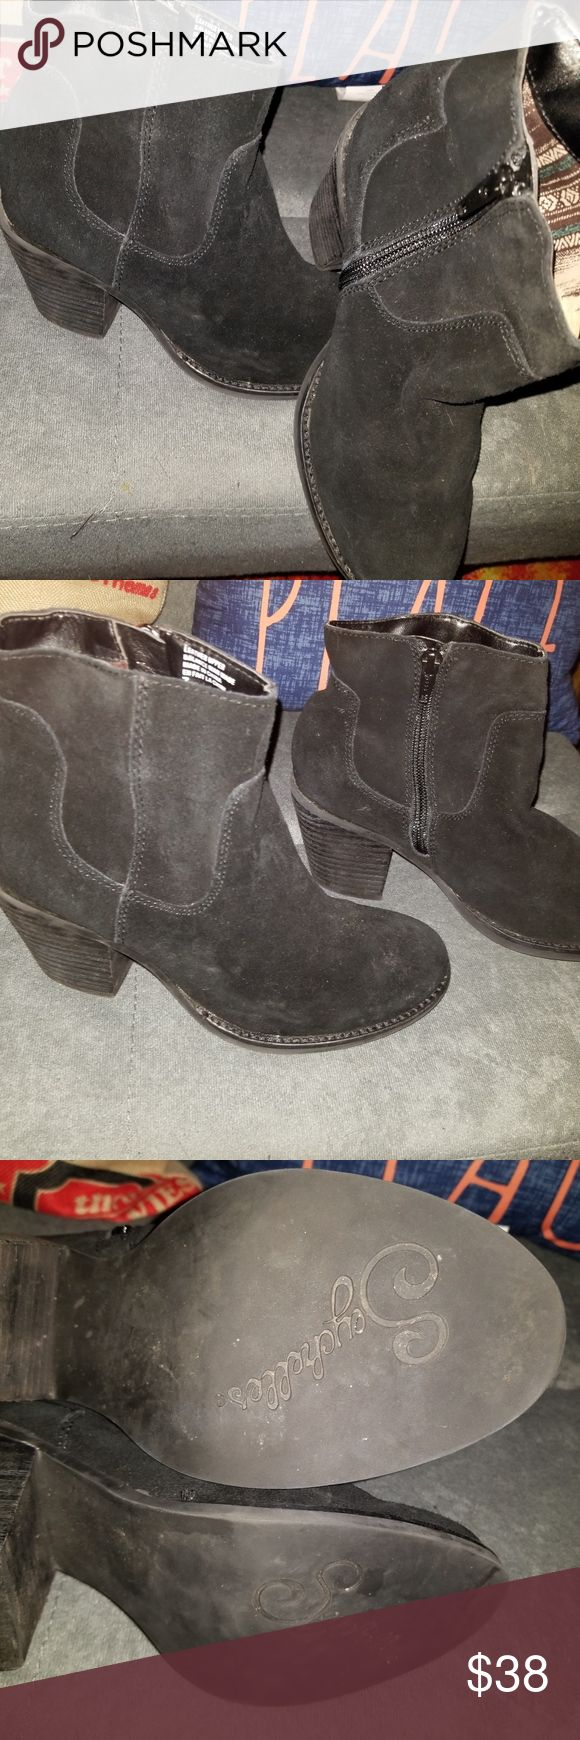 New Seychelles Suede black ankle boots size 7 2.5 heel  light weight  Seychelles's the designer  black suede  side zip  BRAND NEW NEVER WORN Seychelles Boots Shoes